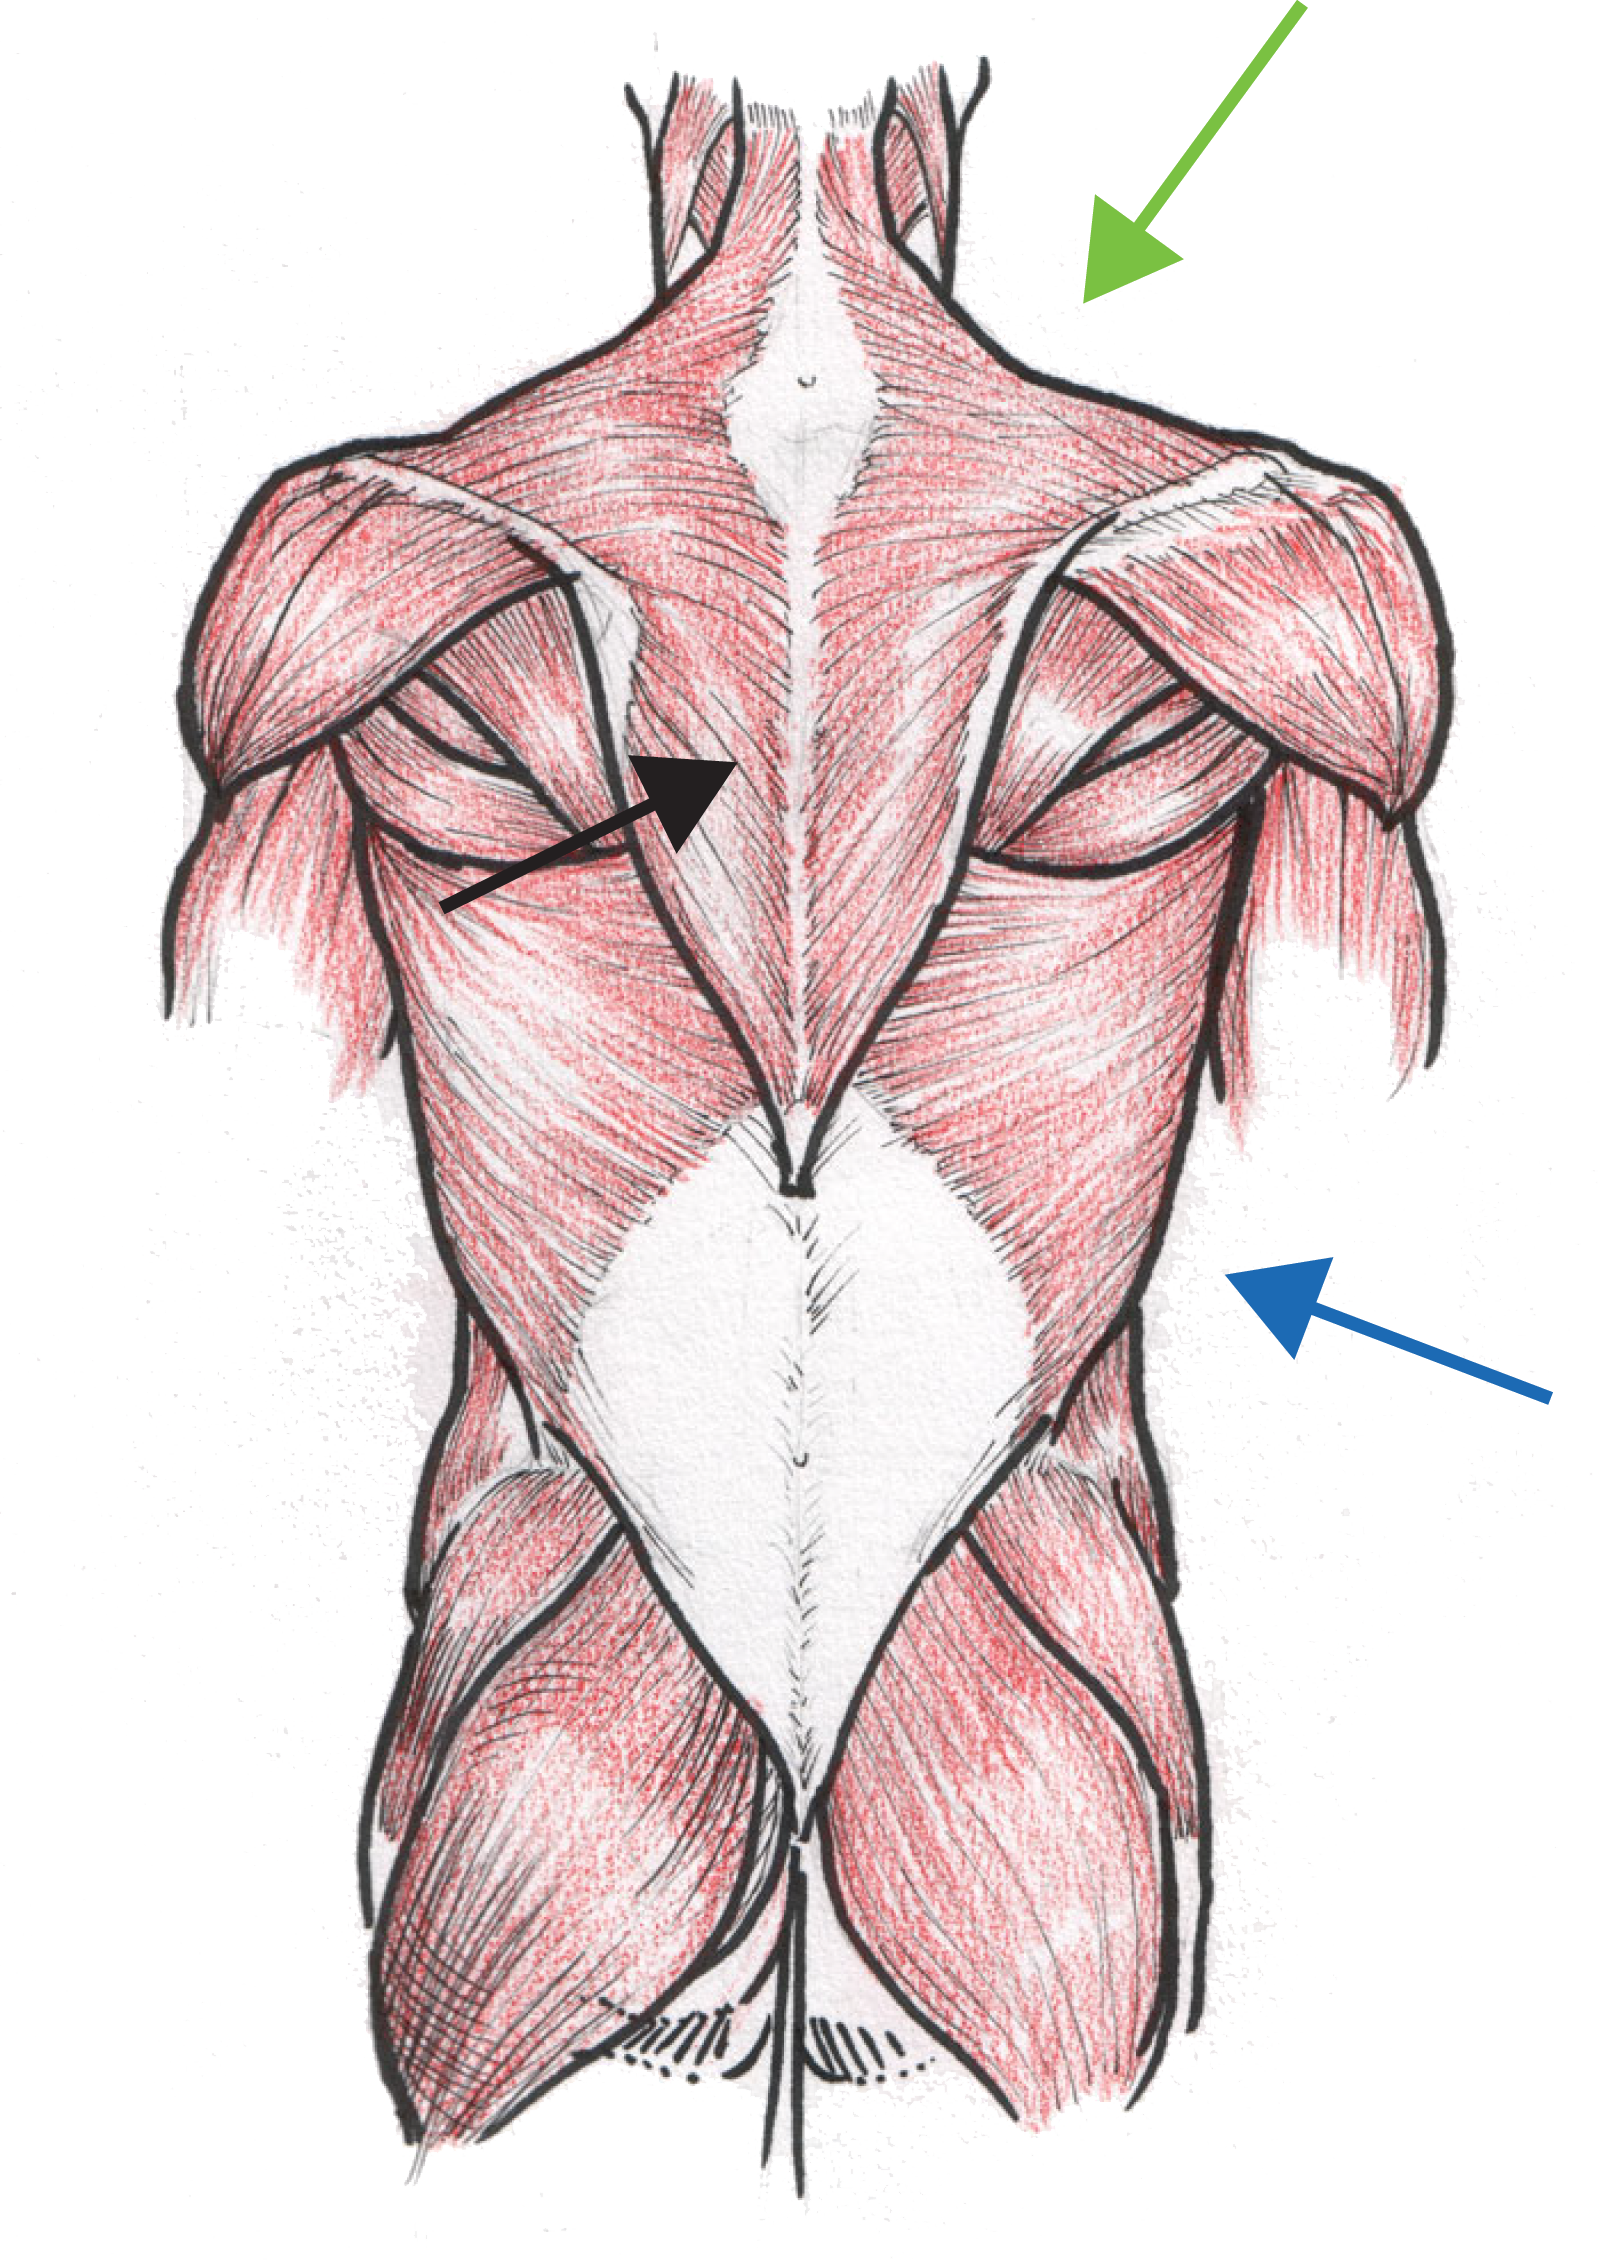 Biceps drawing human muscle. Anatomical illustrations of groups